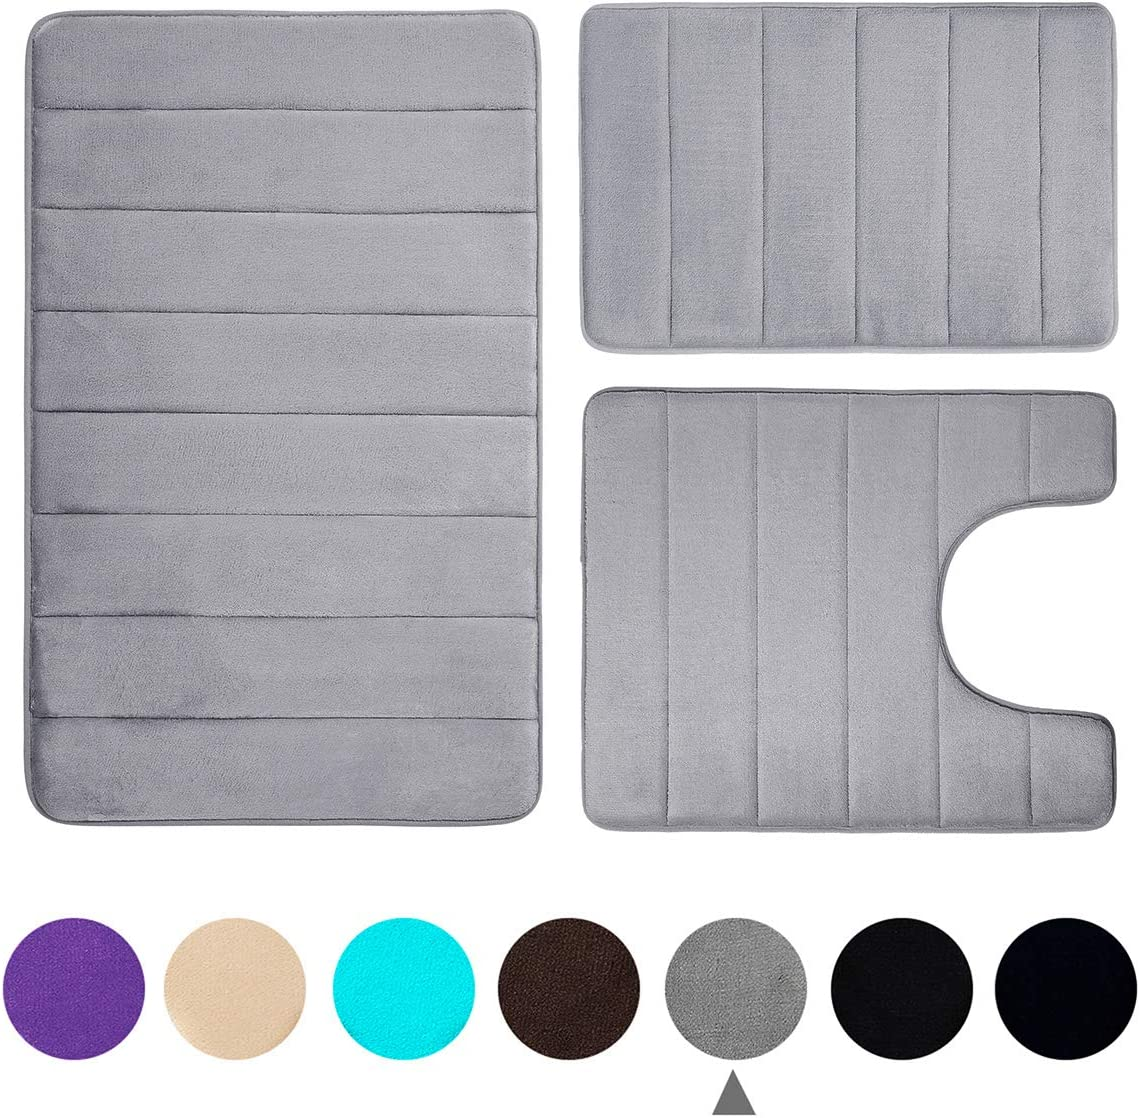 Buganda Memory Foam 3 Pieces Bathroom Rugs Set - Thick Soft Absorbent Non-Slip Bath Mats, Washable Small/Large/Contour Bath Rugs, Grey